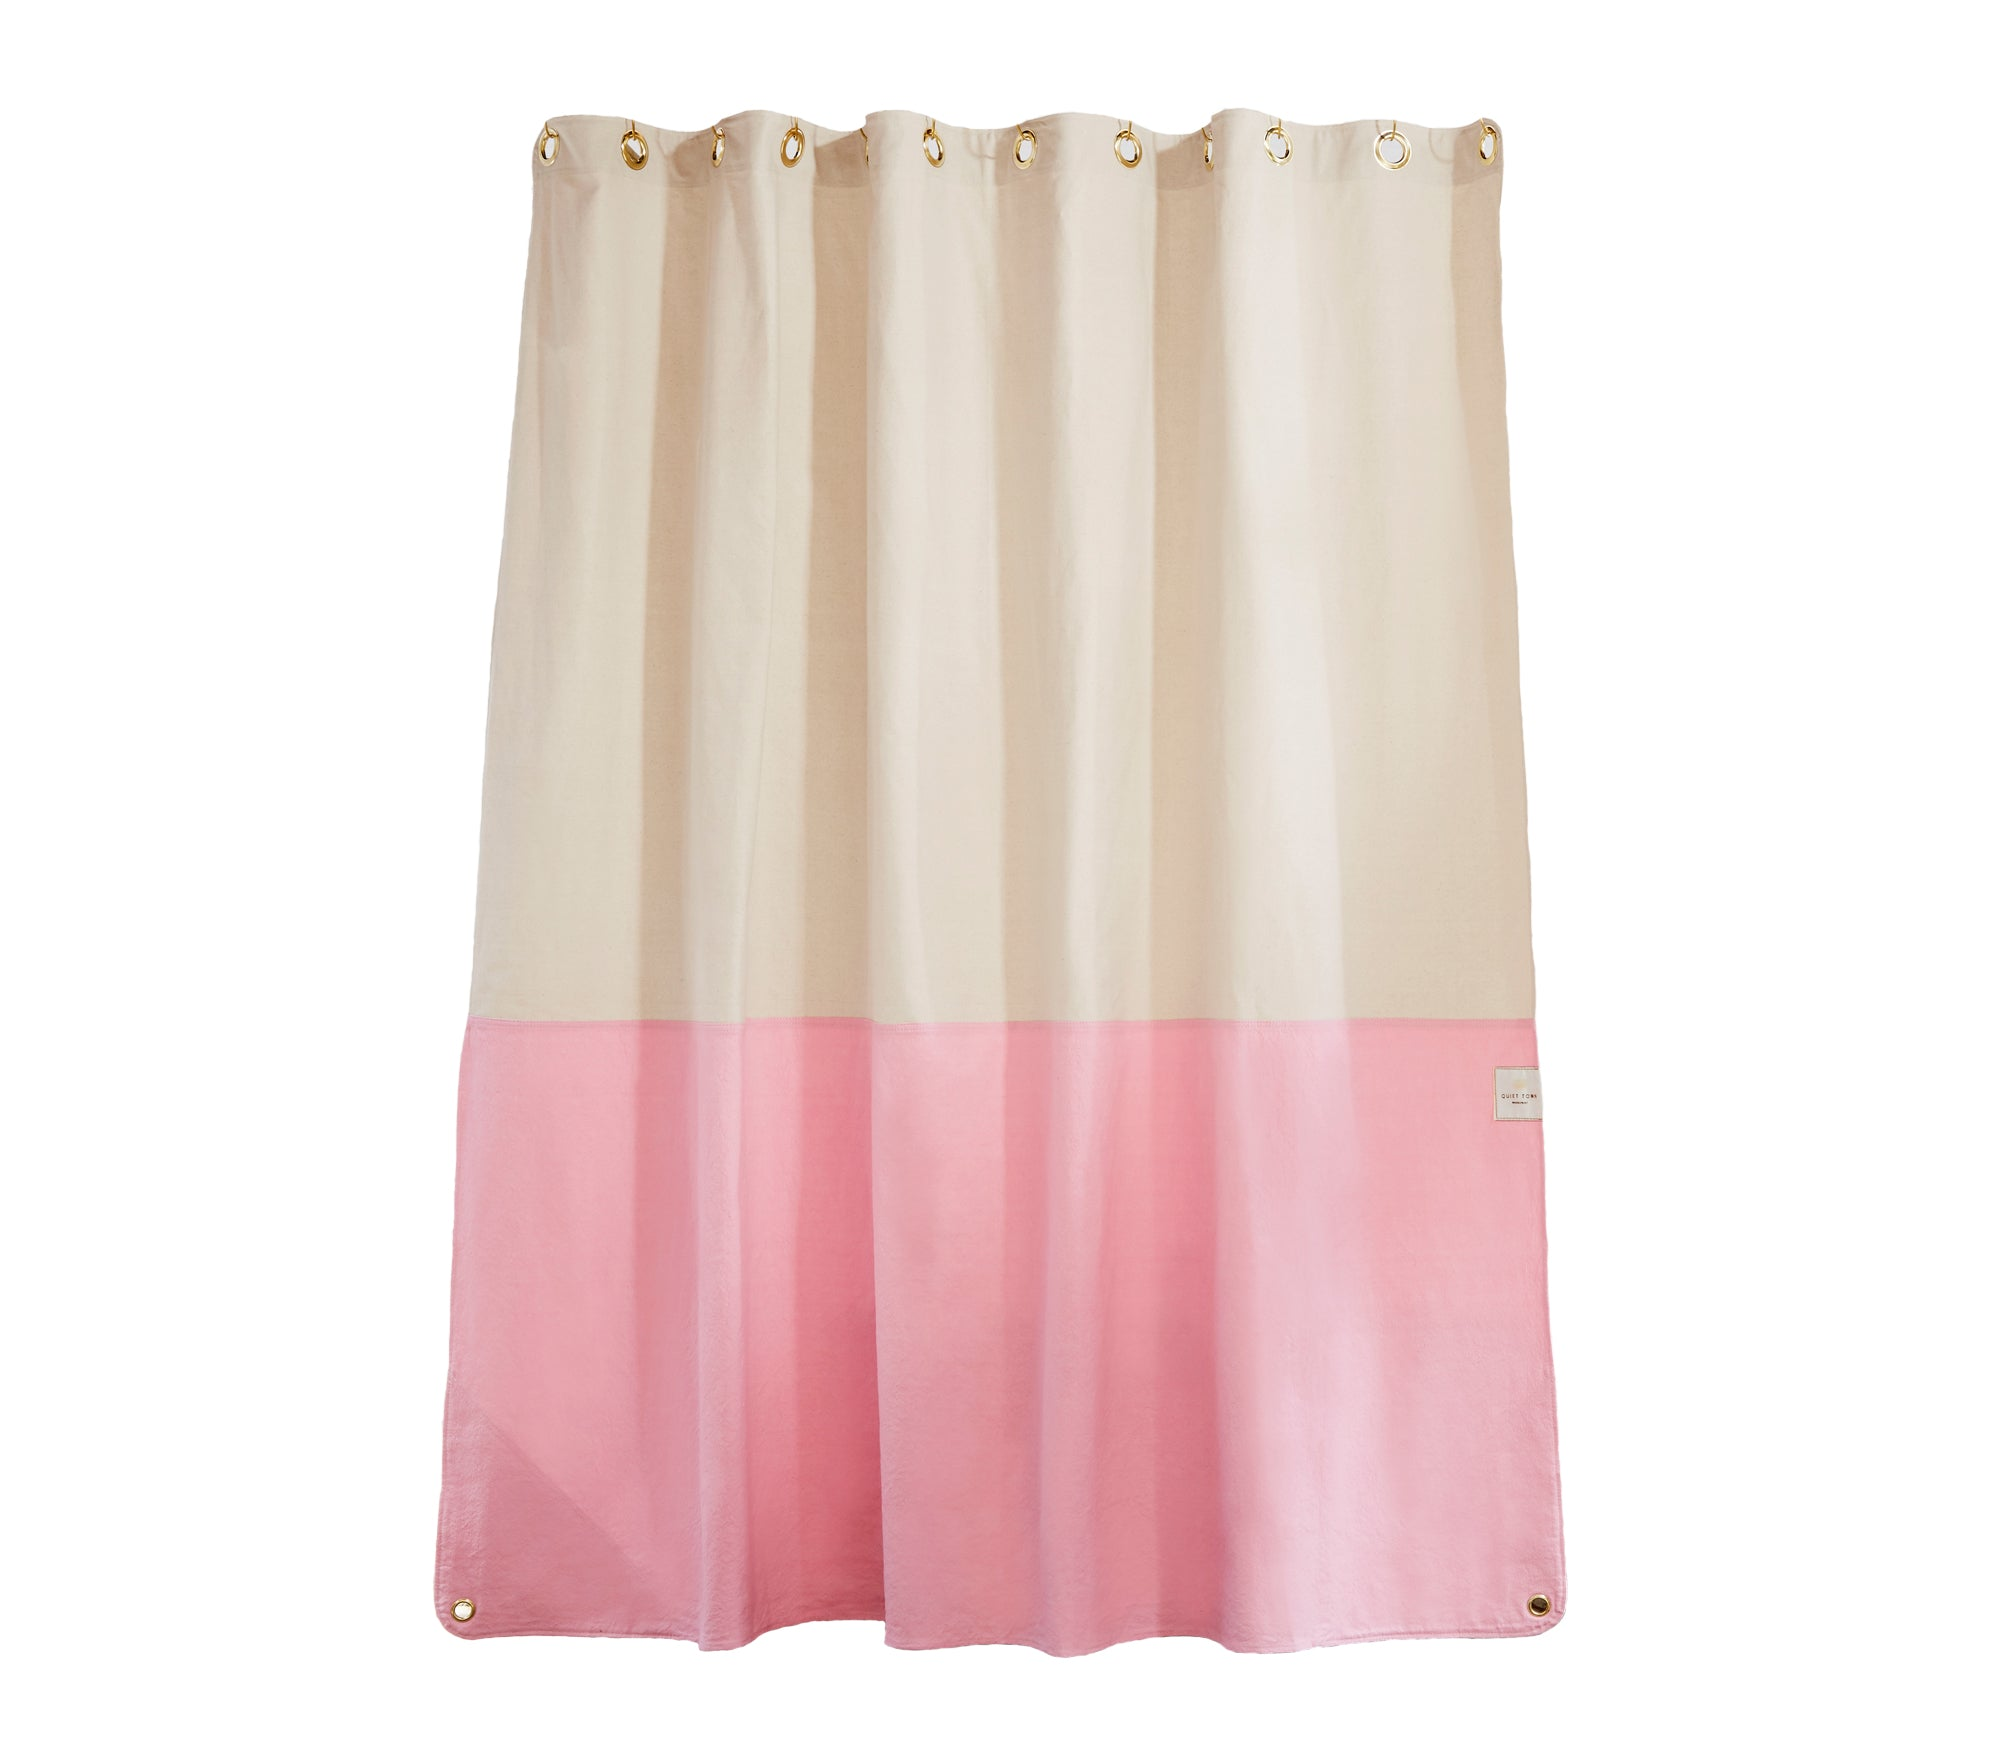 CANVAS SHOWER CURTAIN - ORIENT PHLOX